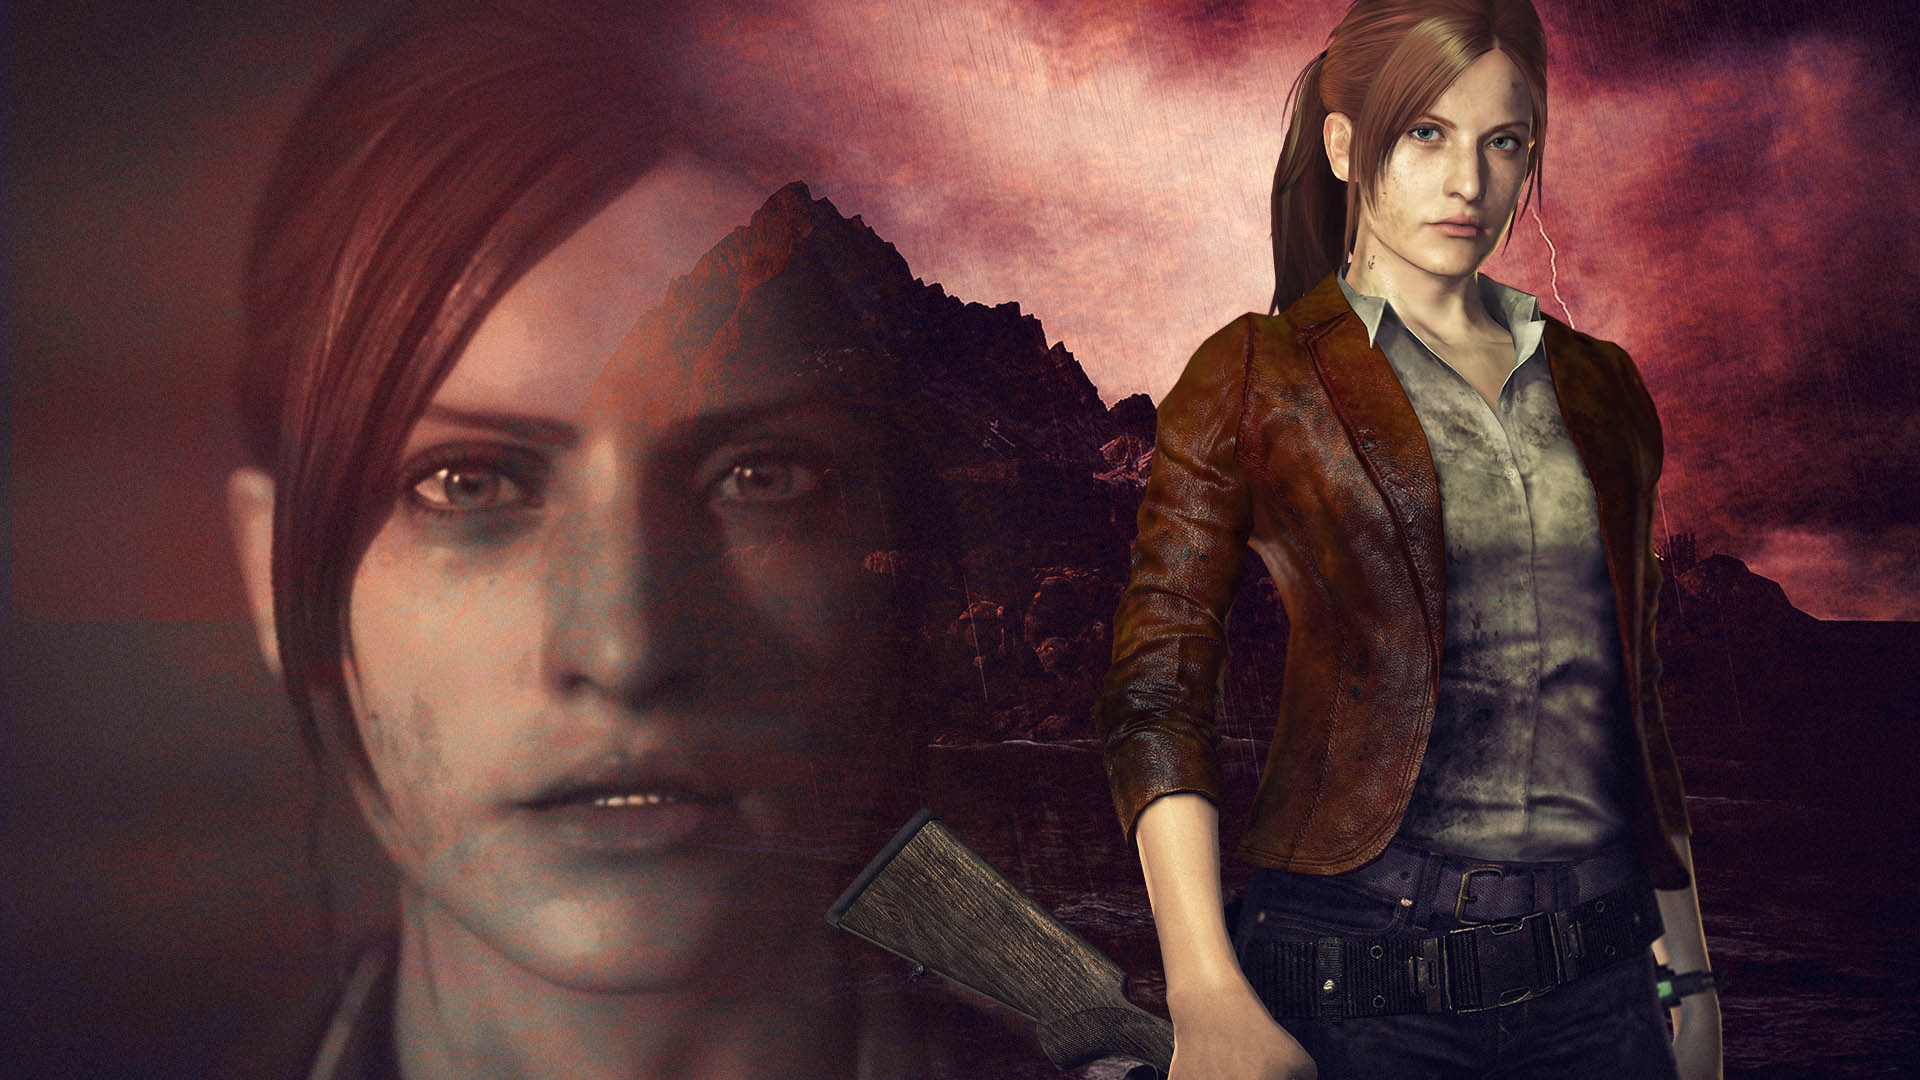 Normal dbabes resident evil claire redfield